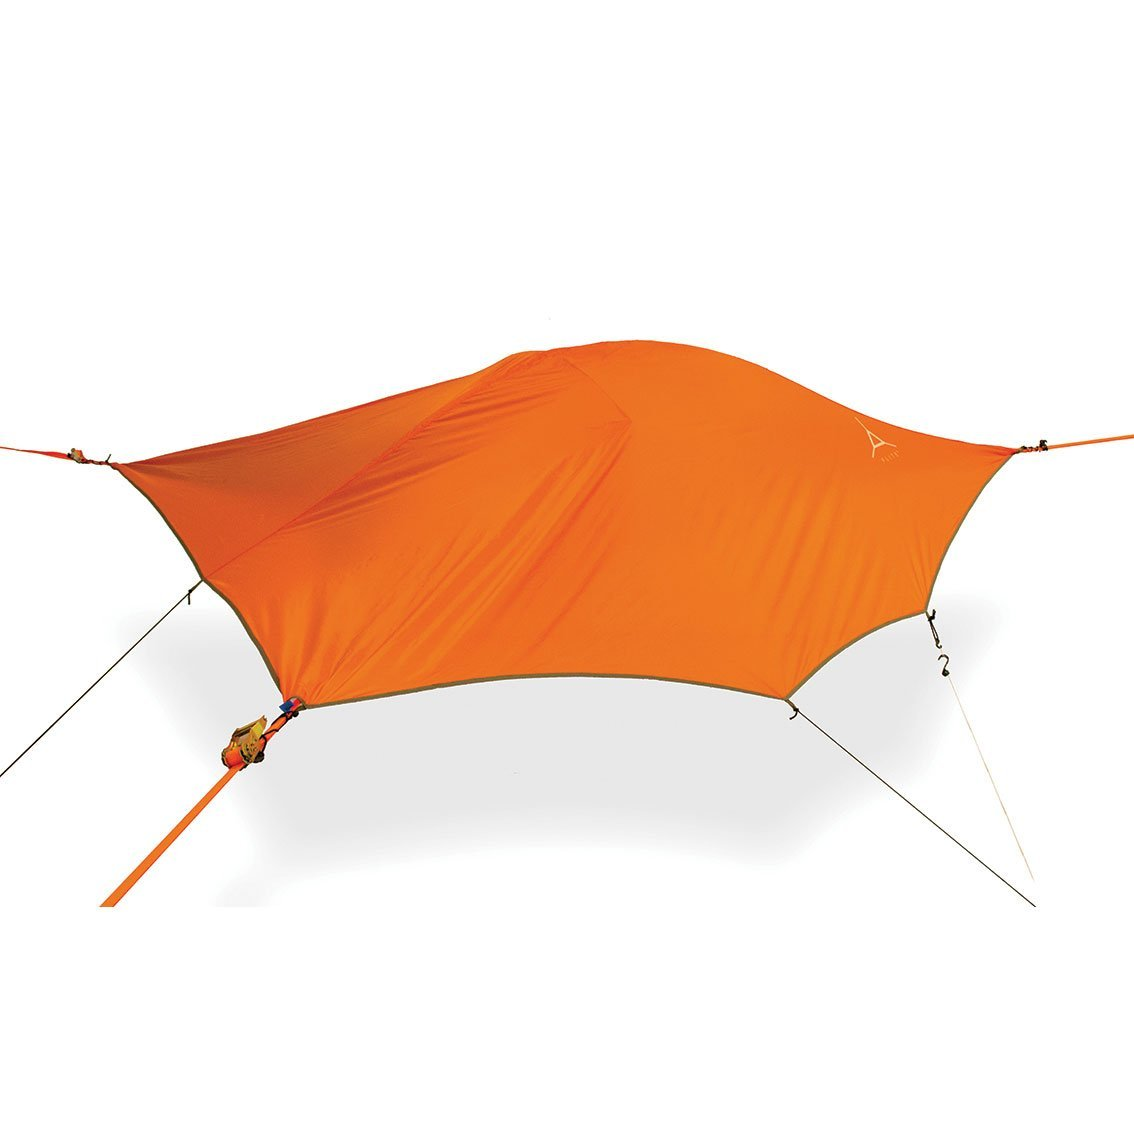 Tentsile | Flite Tree Tent | 2 Man Lightweight Suspended Hammock Tent | Orange